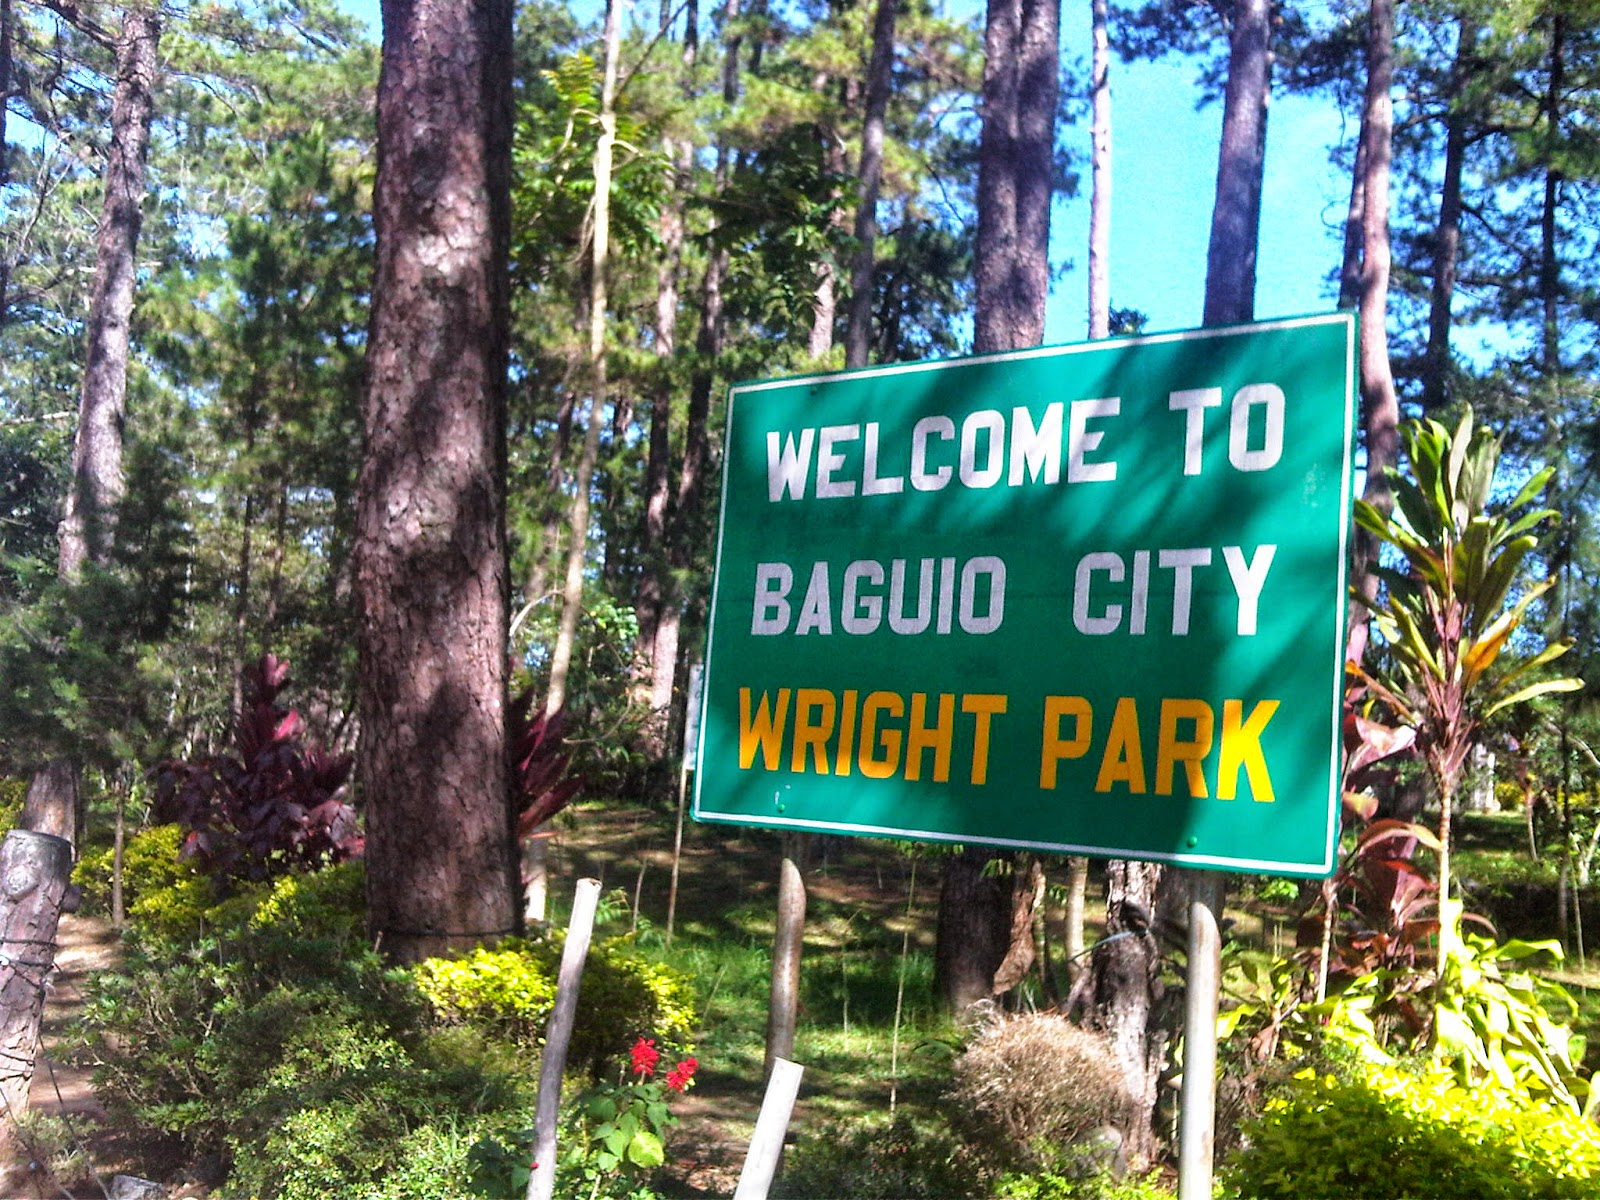 Things to see in Baguio? Wright Park